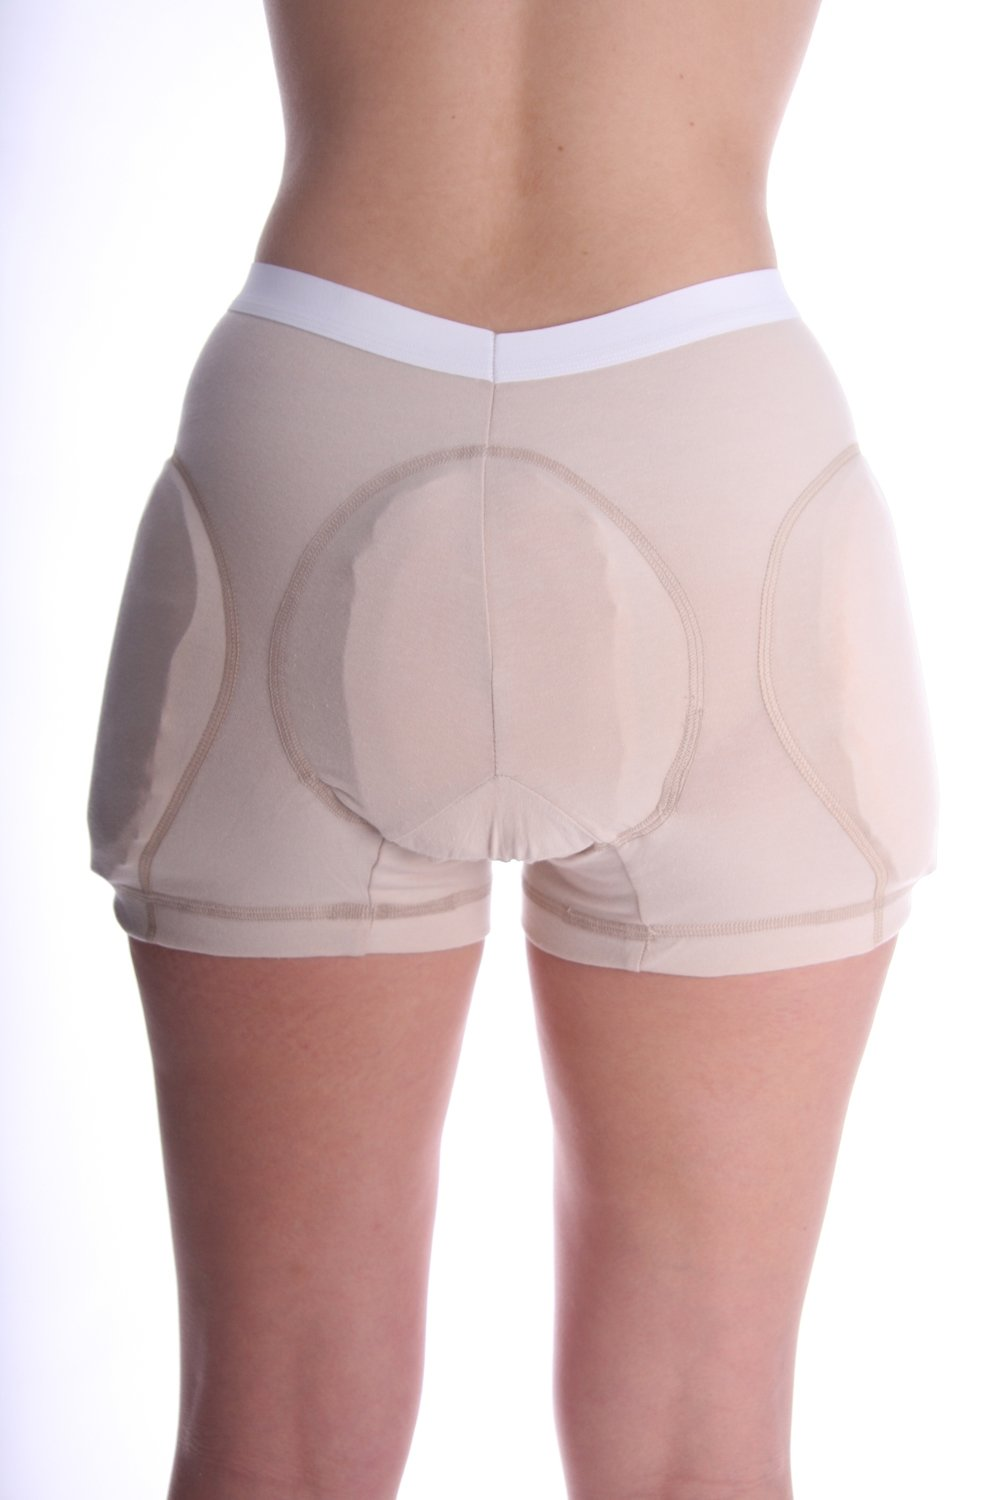 HipSaver SlimFit High Compliance With Tailbone Protector